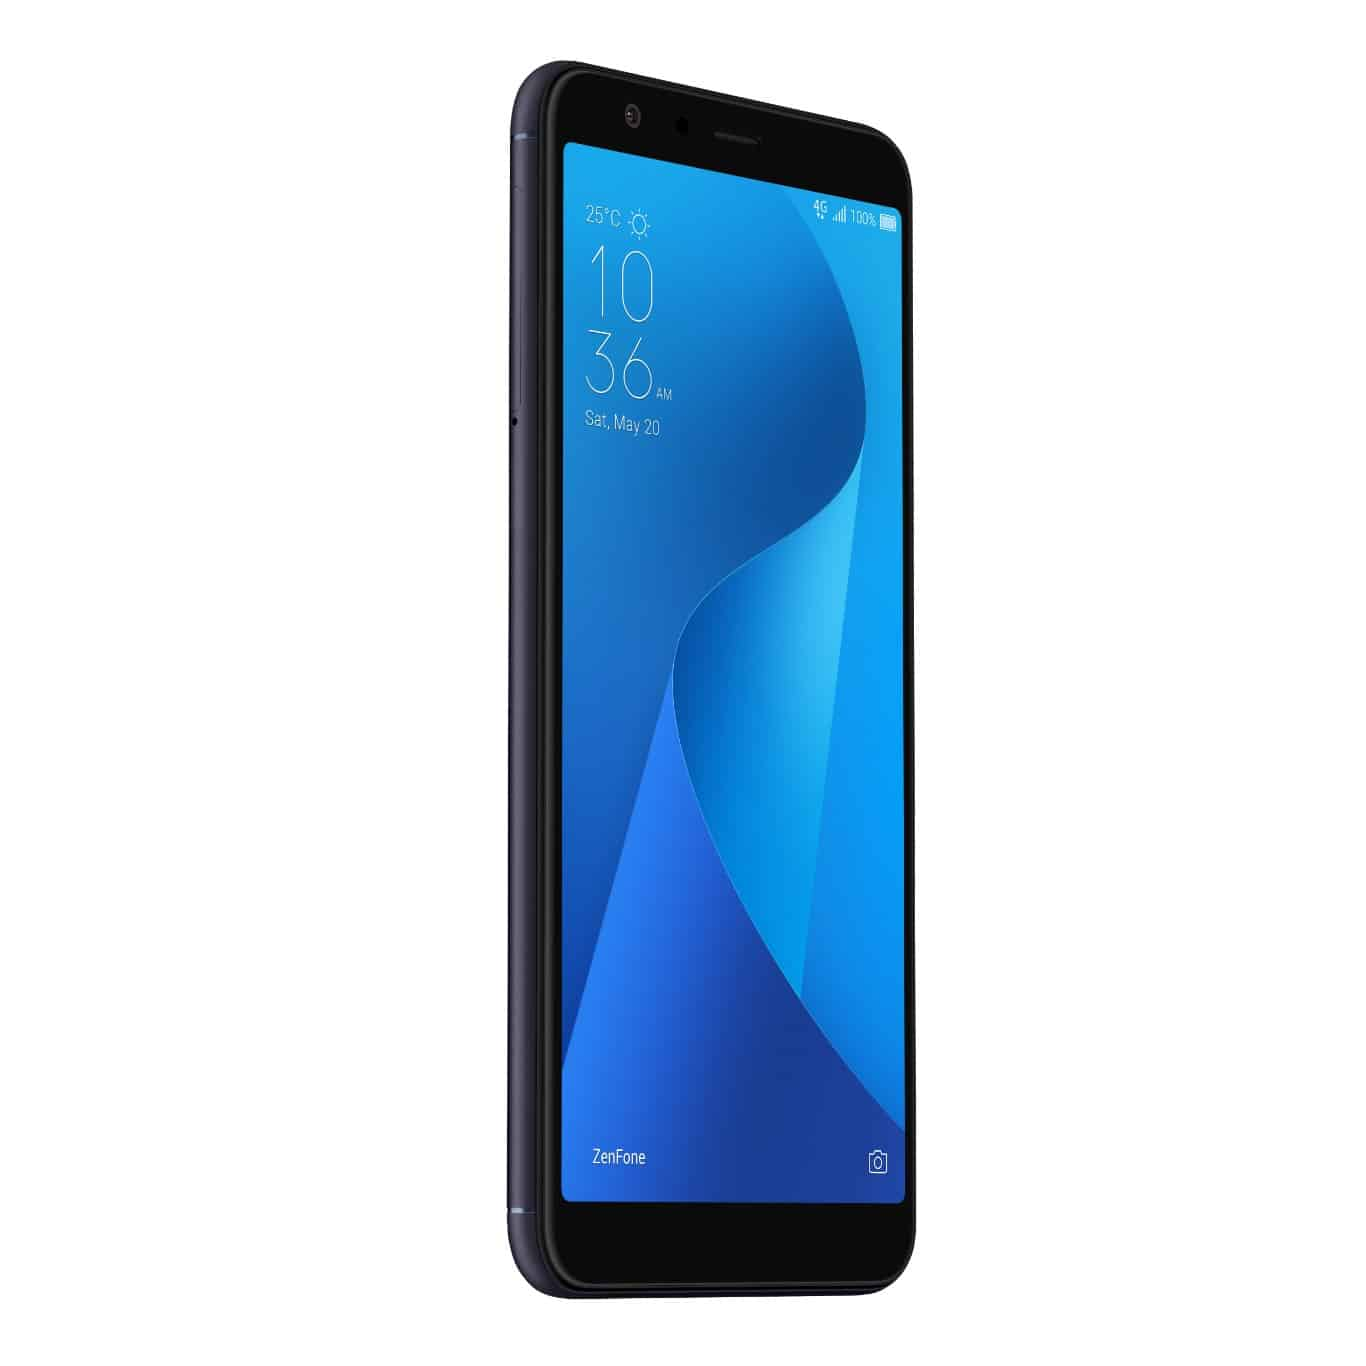 ASUS ZenFone Max Plus M1 official image 7